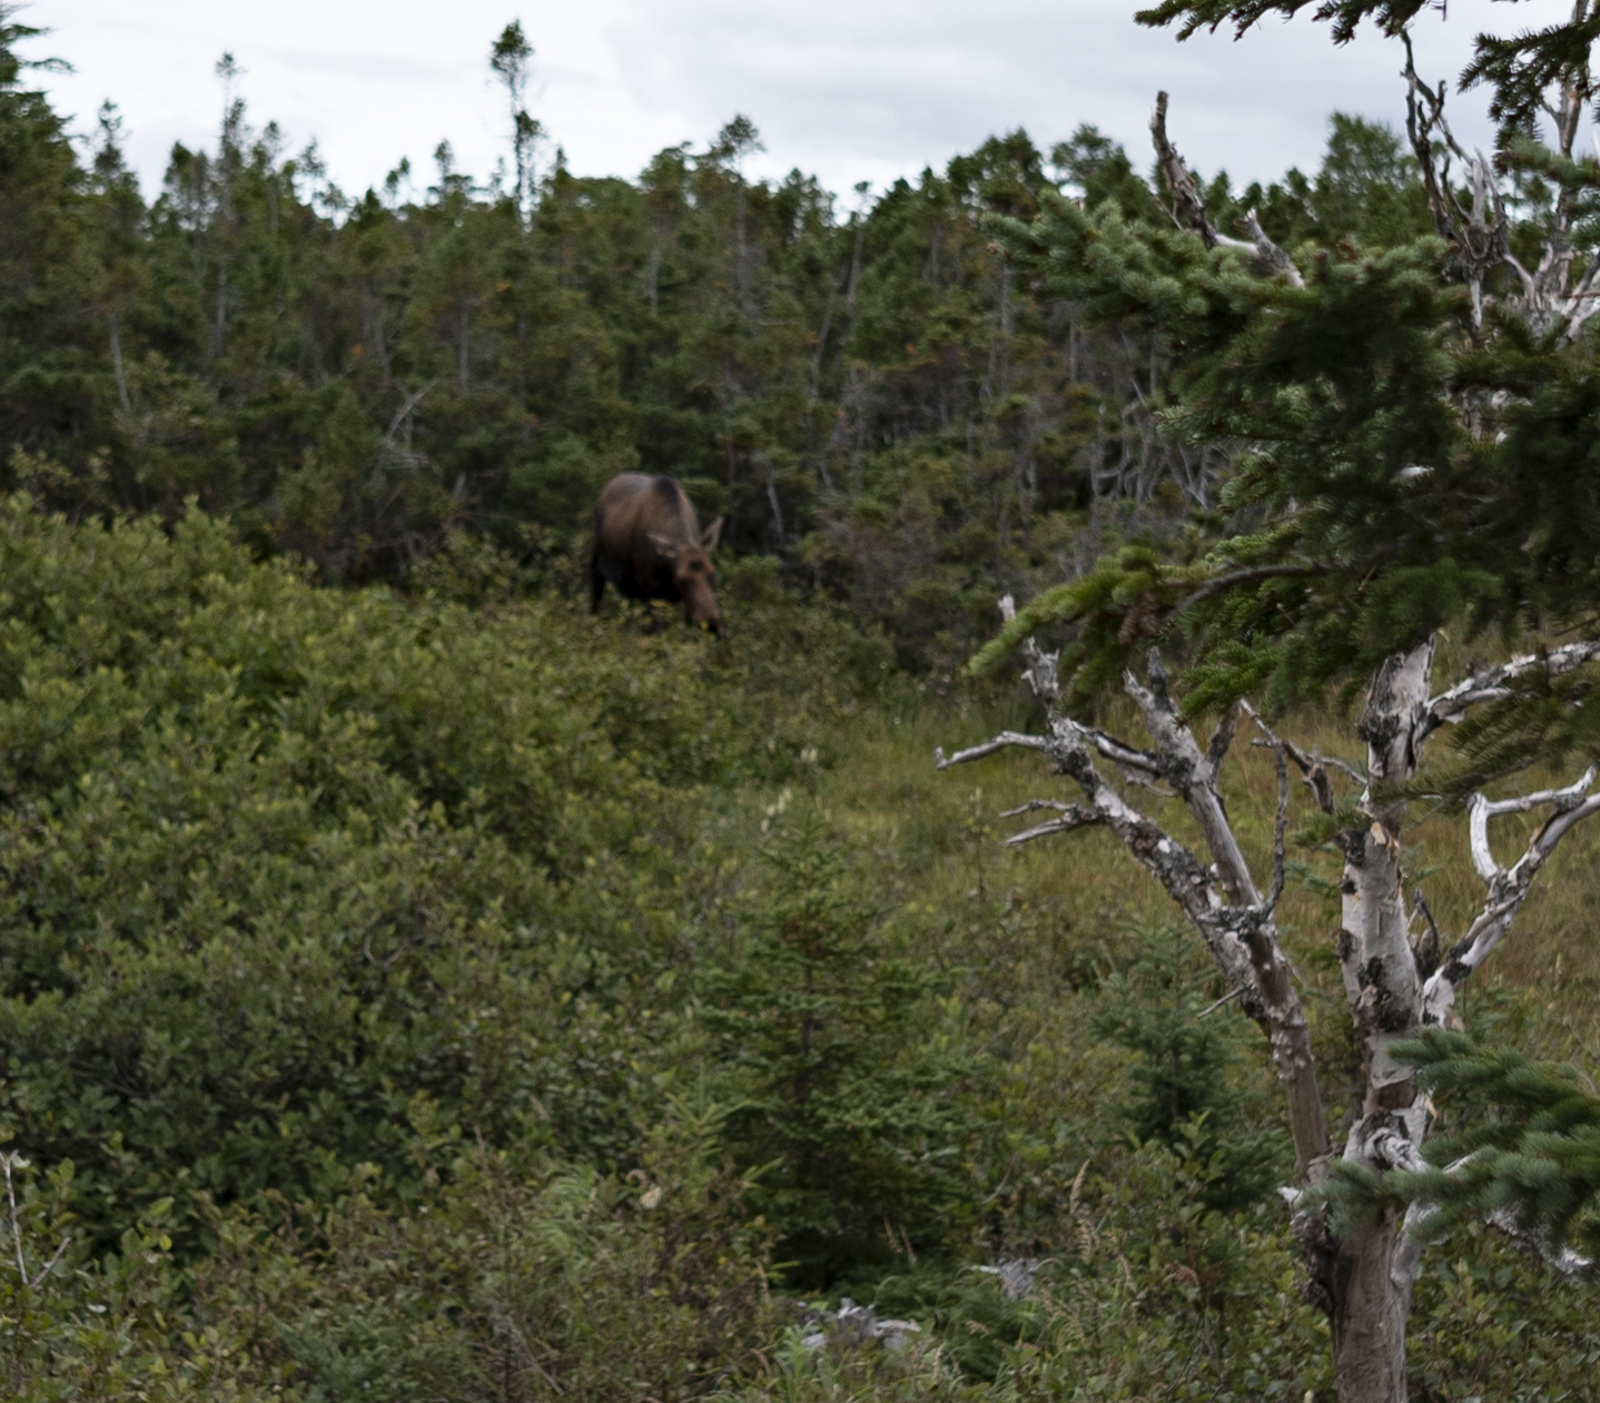 Moose on the side of the trail.